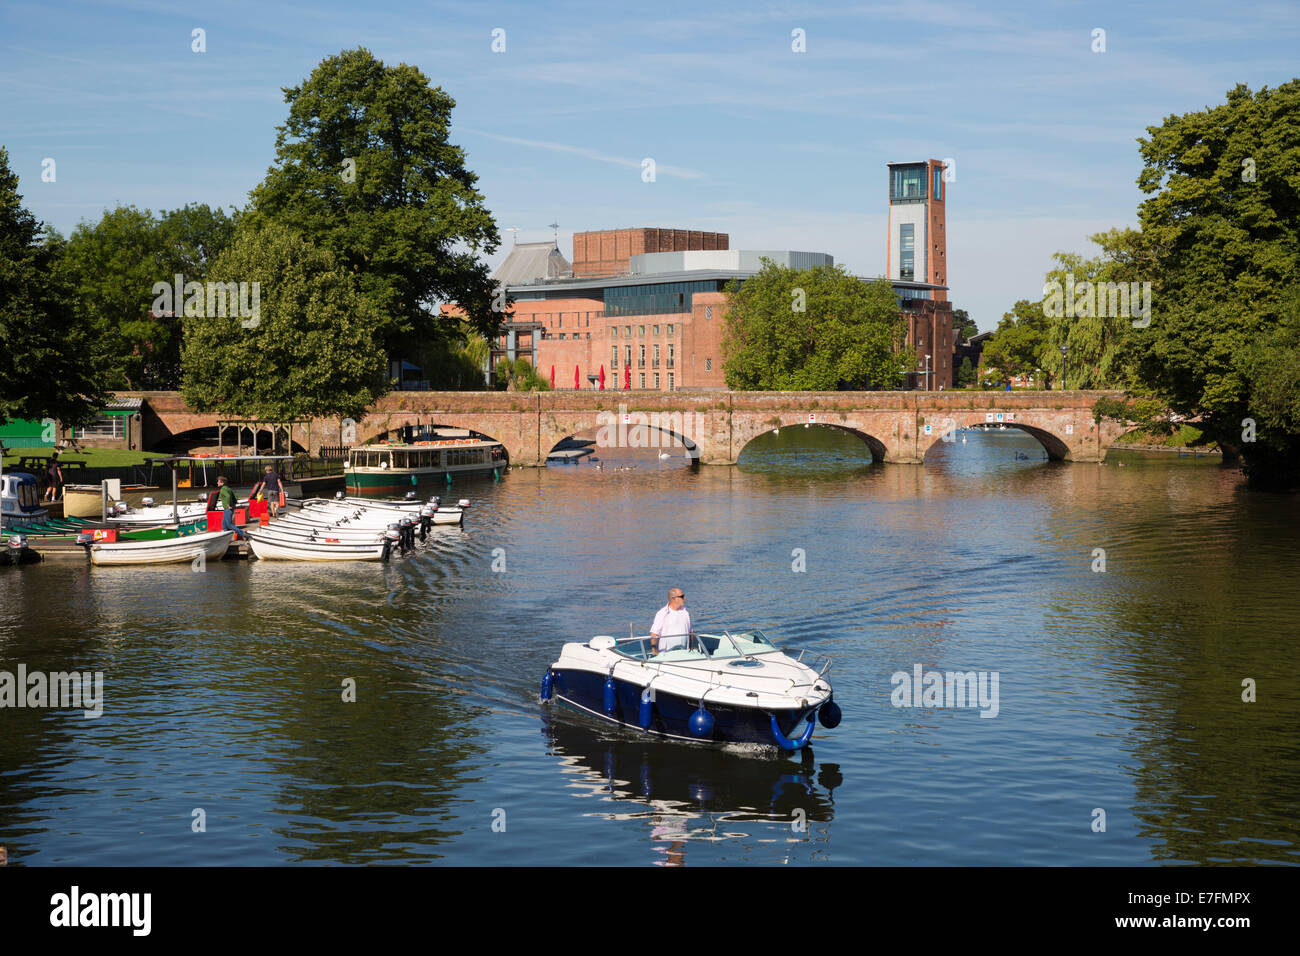 Boats on the River Avon and the Royal Shakespeare Theatre, Stratford-upon-Avon, Warwickshire, England, United Kingdom, - Stock Image